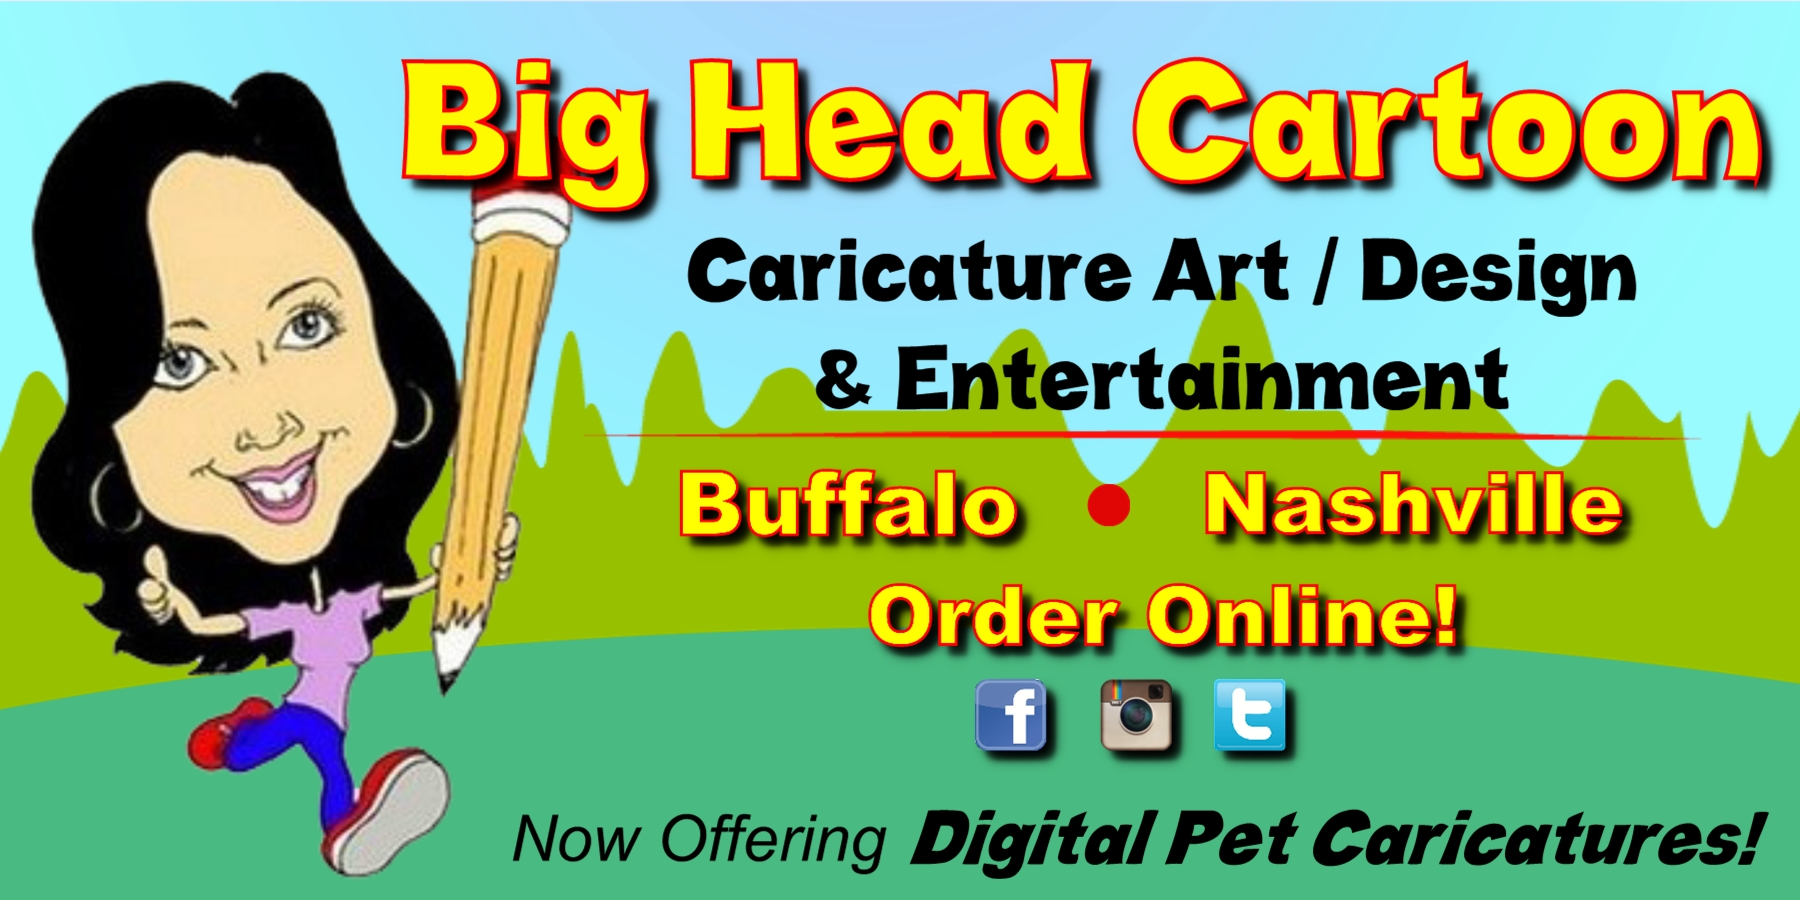 WNY's most in demand Caricature Artist